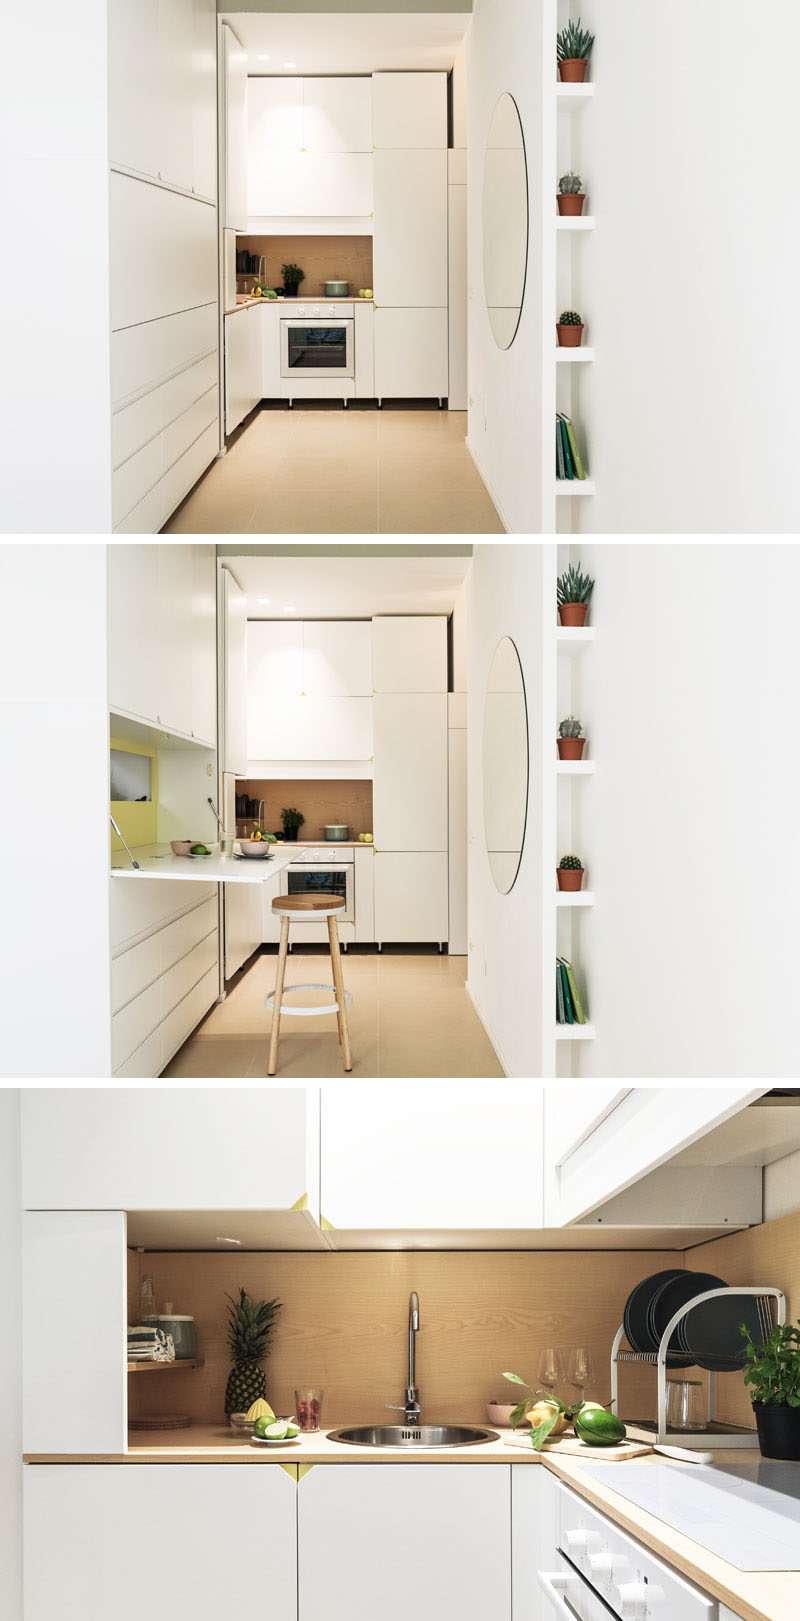 This small apartment kitchen has a row of cabinets with a fold down counter height table that can be used for additional counter space. #SmallKitchen #KitchenDesign